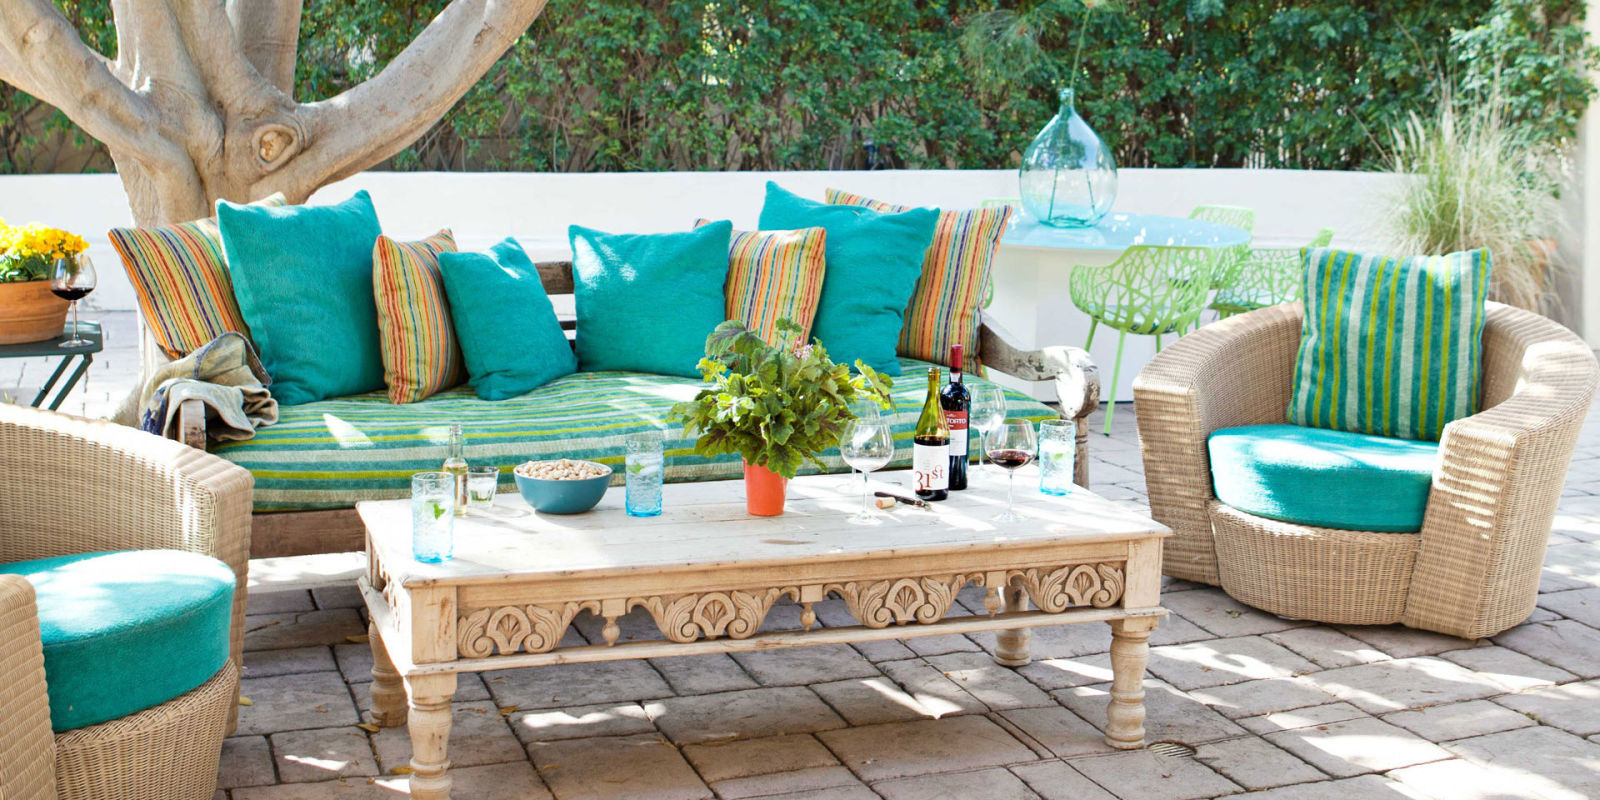 50 Patio And Outdoor Room Design Ideas And Photos